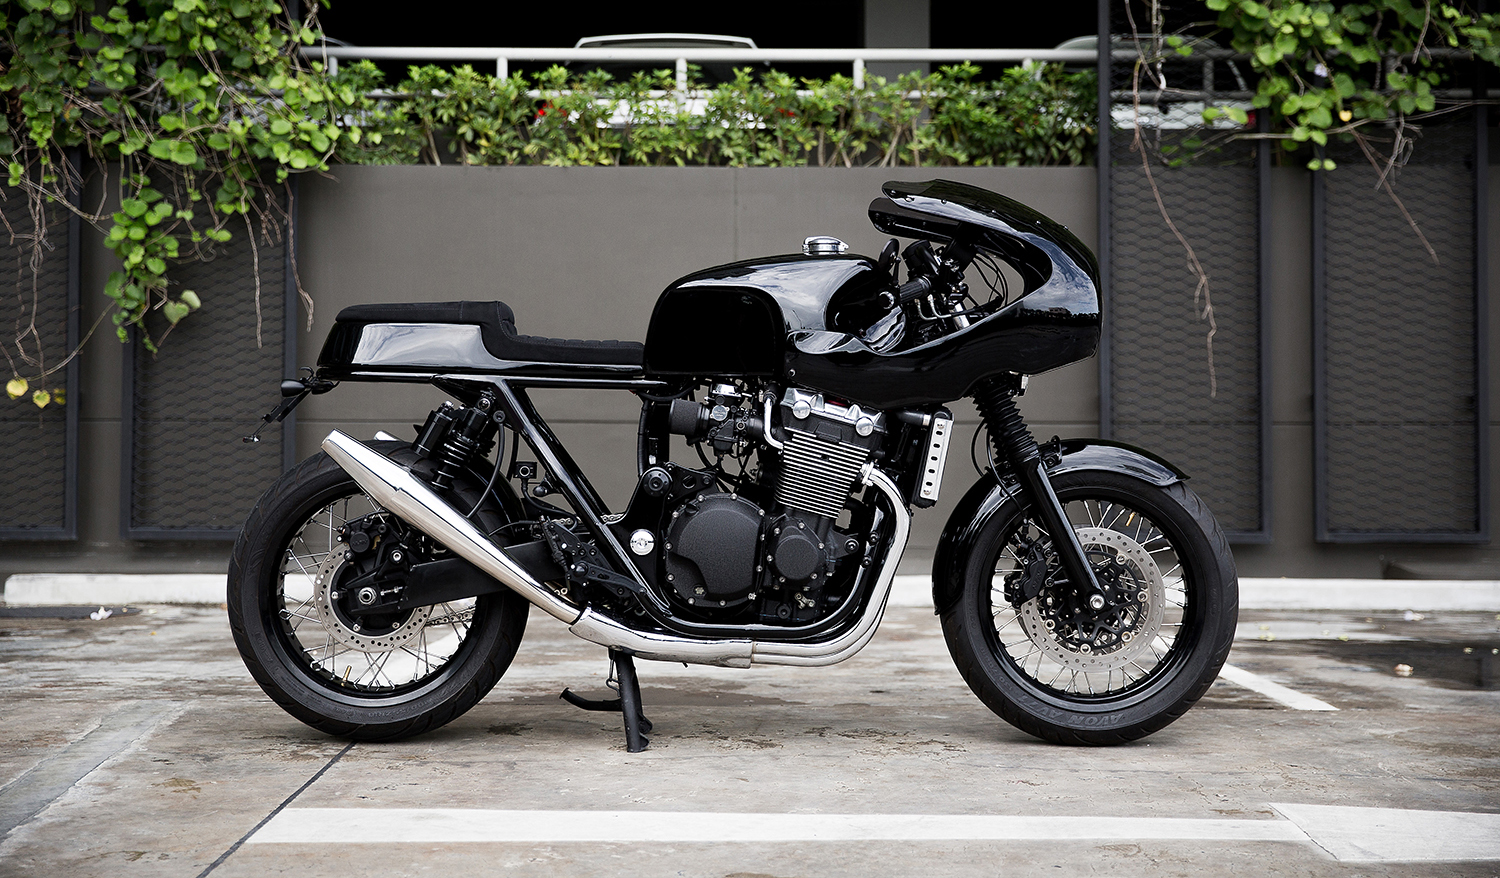 BEAUTY AND THE BEAST: Honda CB1300 'Muscle Racer' by Thomas Danet.